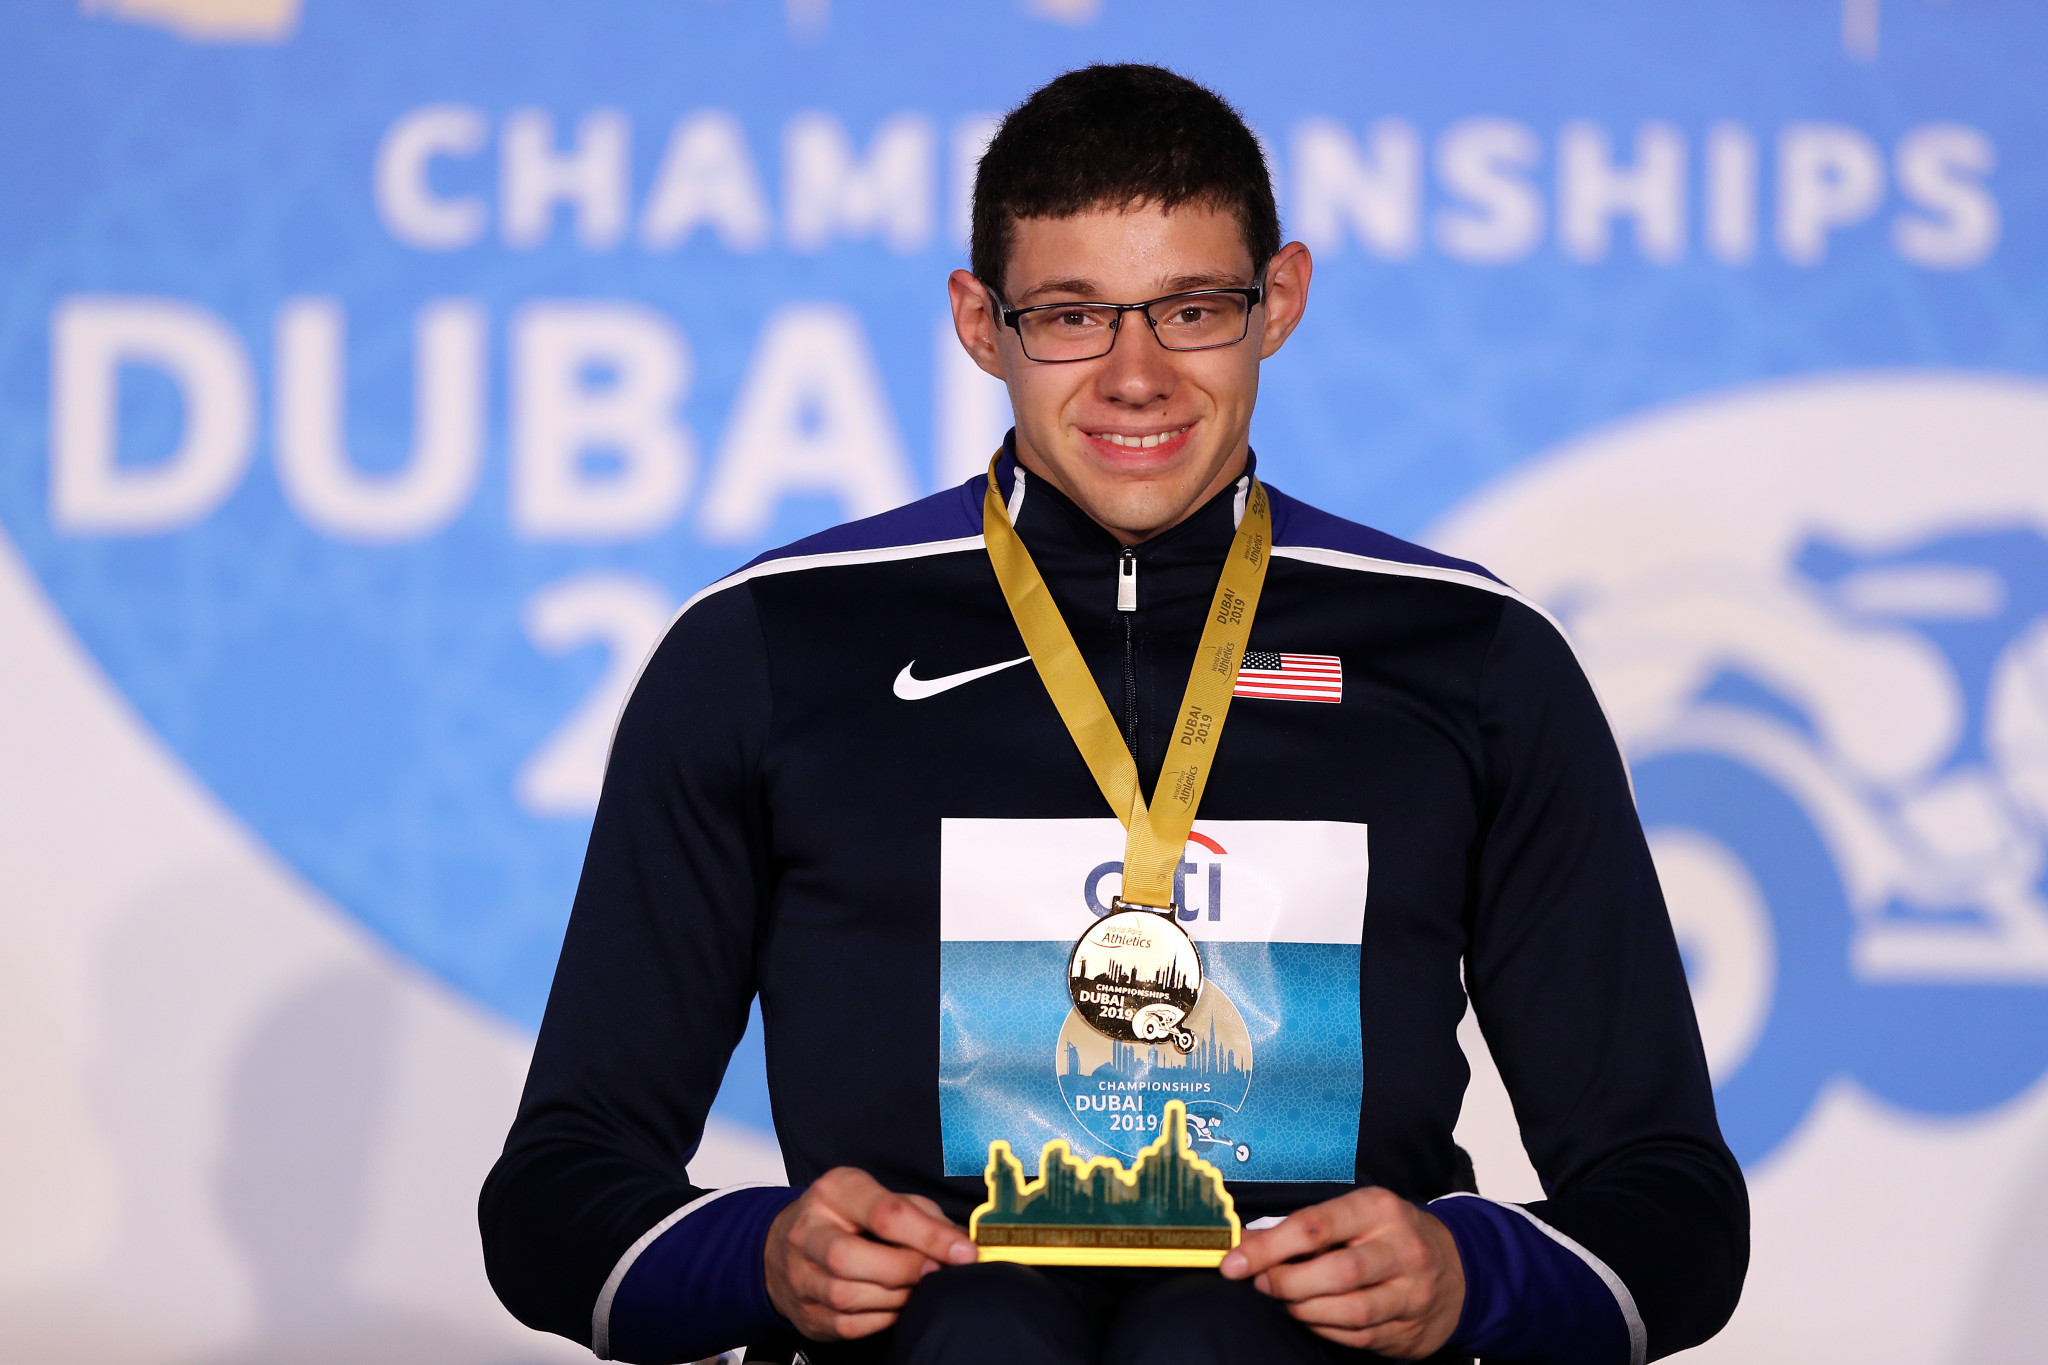 Romanchuk among winners at World Para Athletics Championships in Dubai